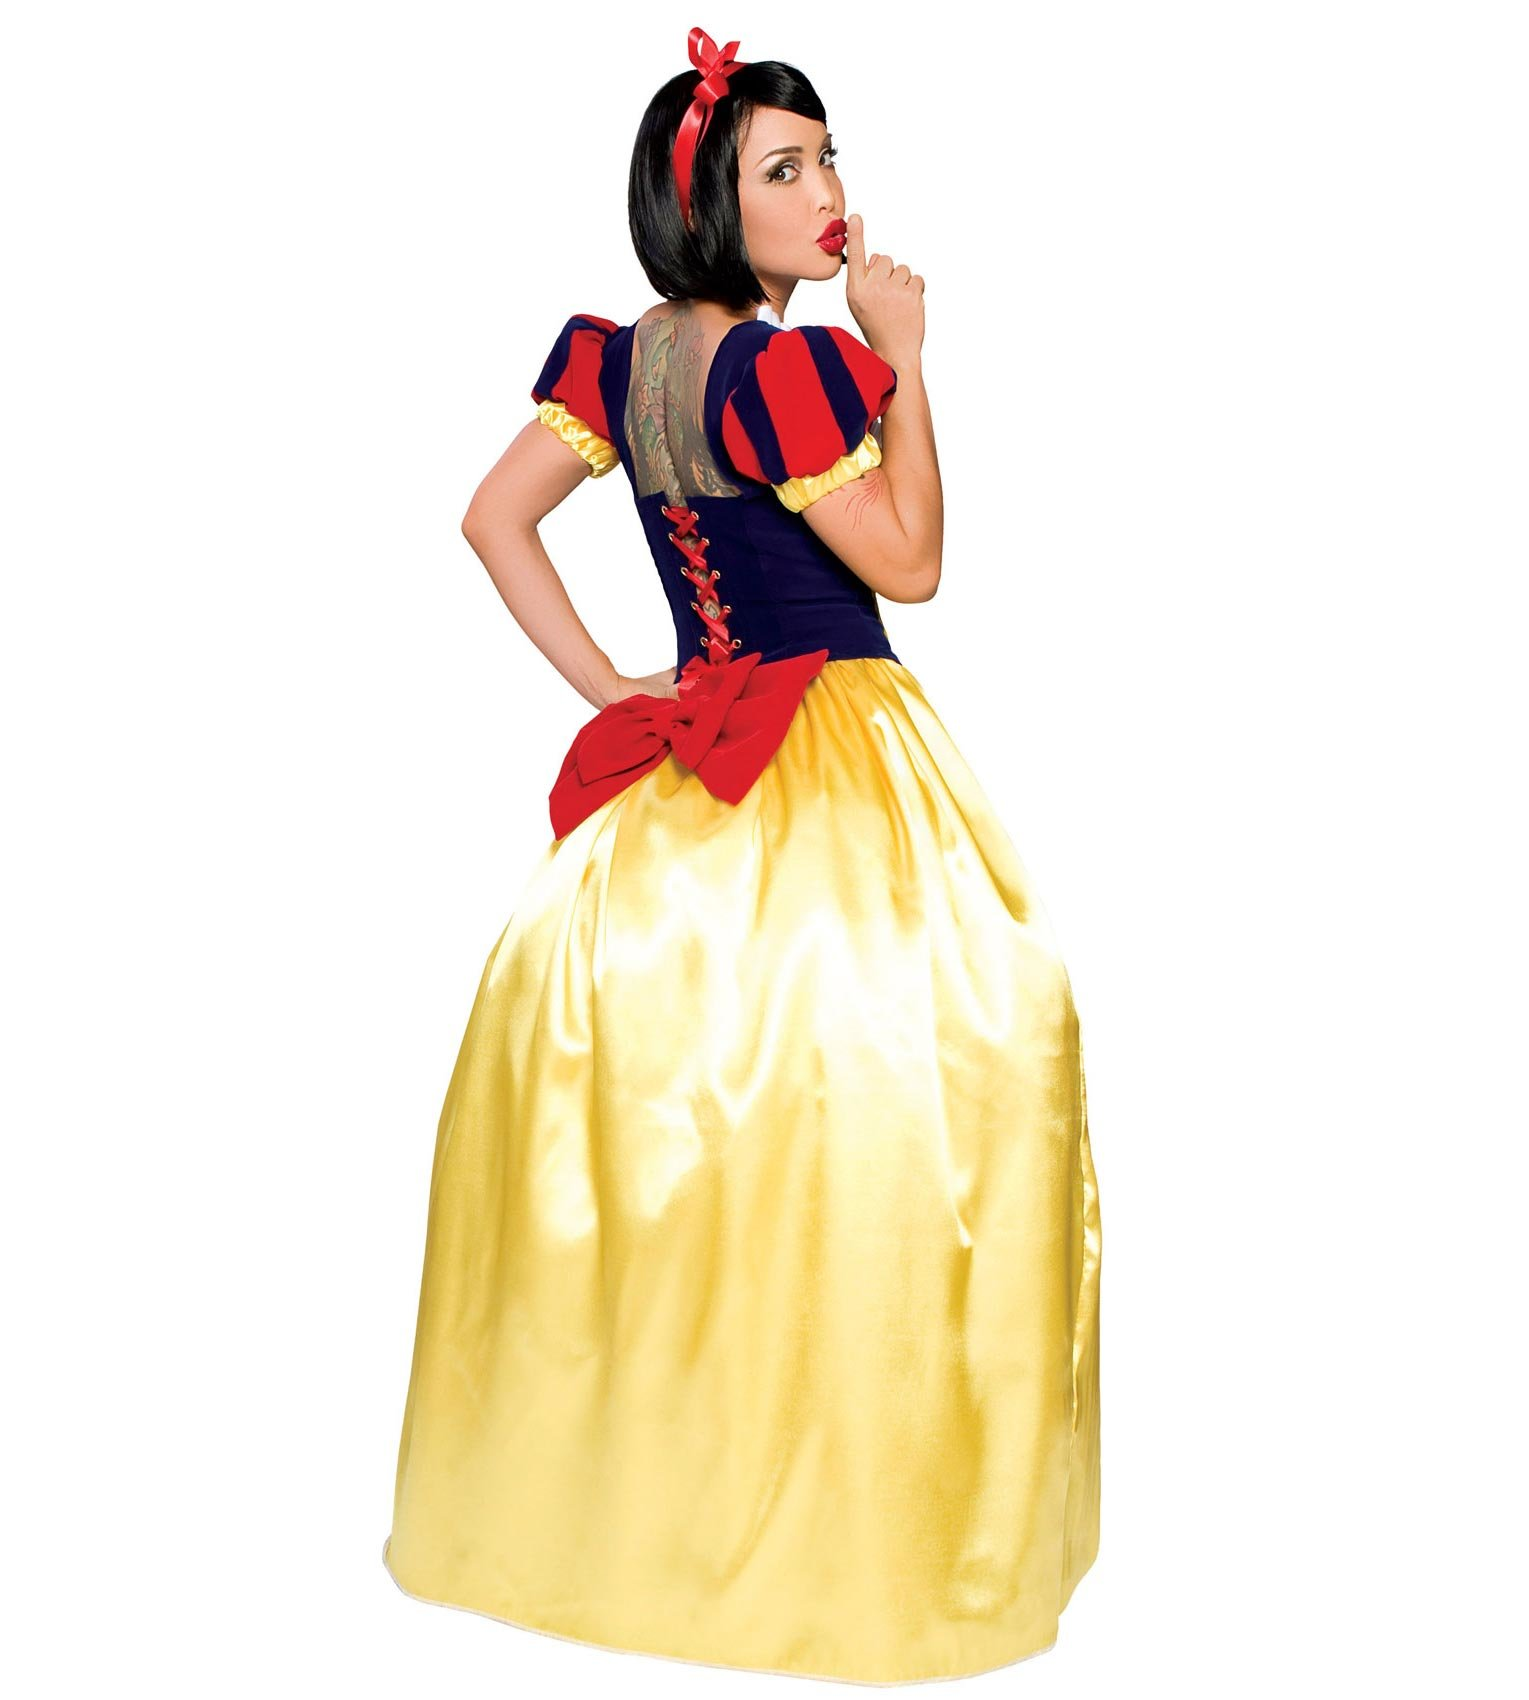 Become the princess who was always the fairest of them all in this Womens Snow White Costume Its an elegant dress of luxurious stretch velvet and shimmery